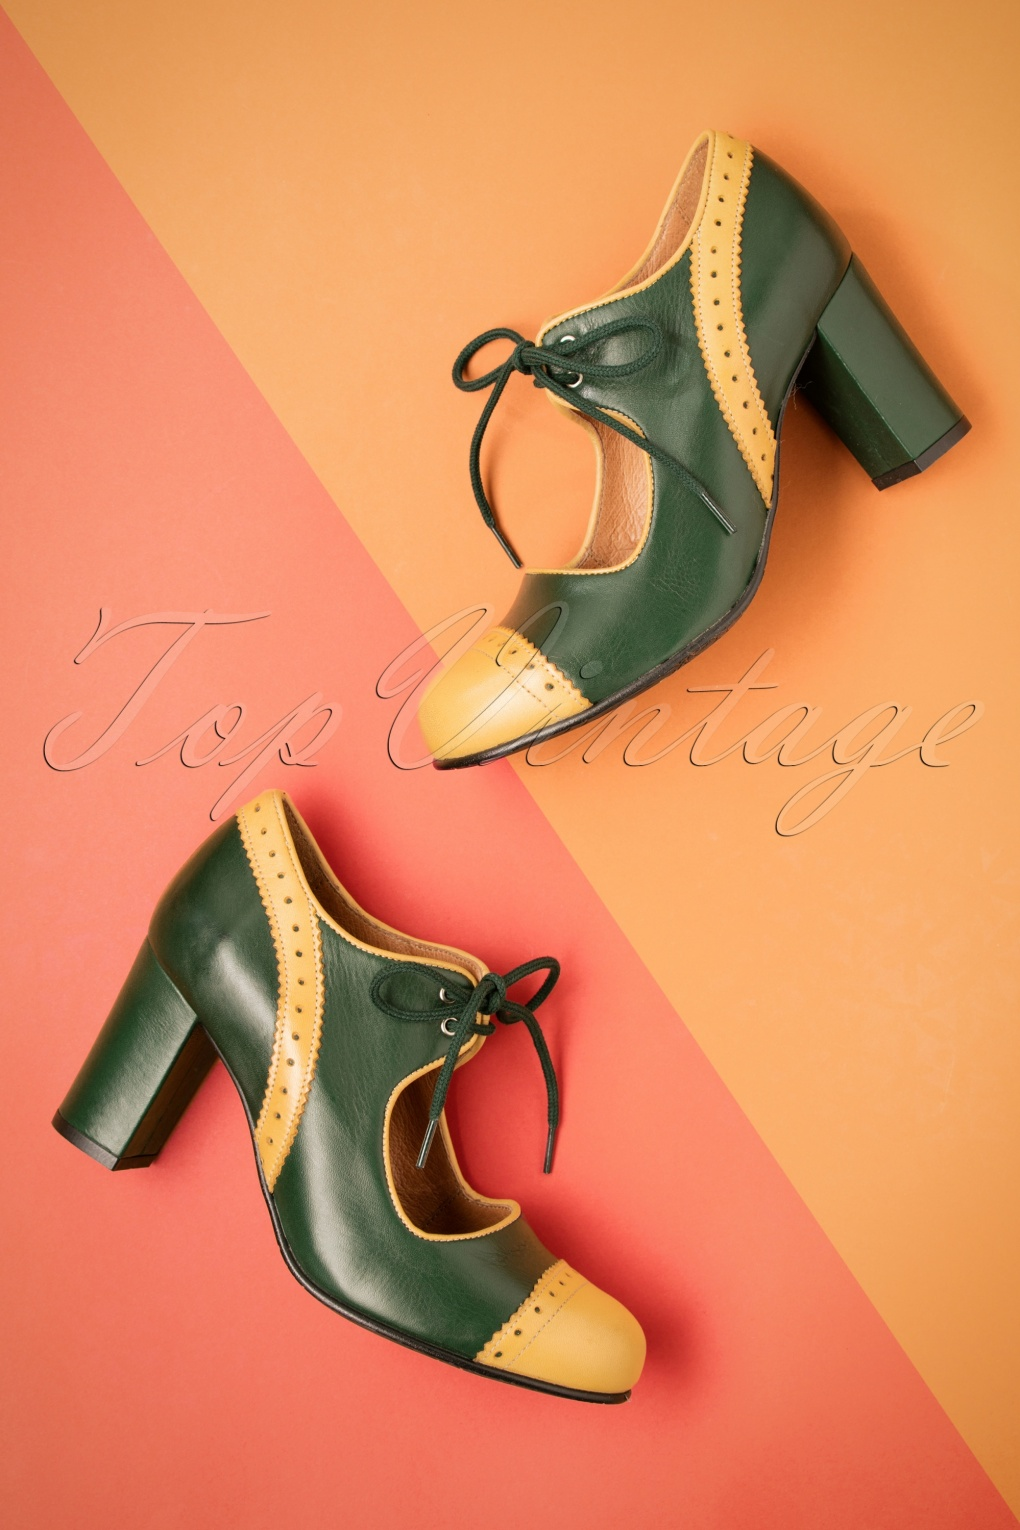 Vintage Style Shoes, Vintage Inspired Shoes 60s Margot Leather Pumps in Green and Mustard £134.57 AT vintagedancer.com